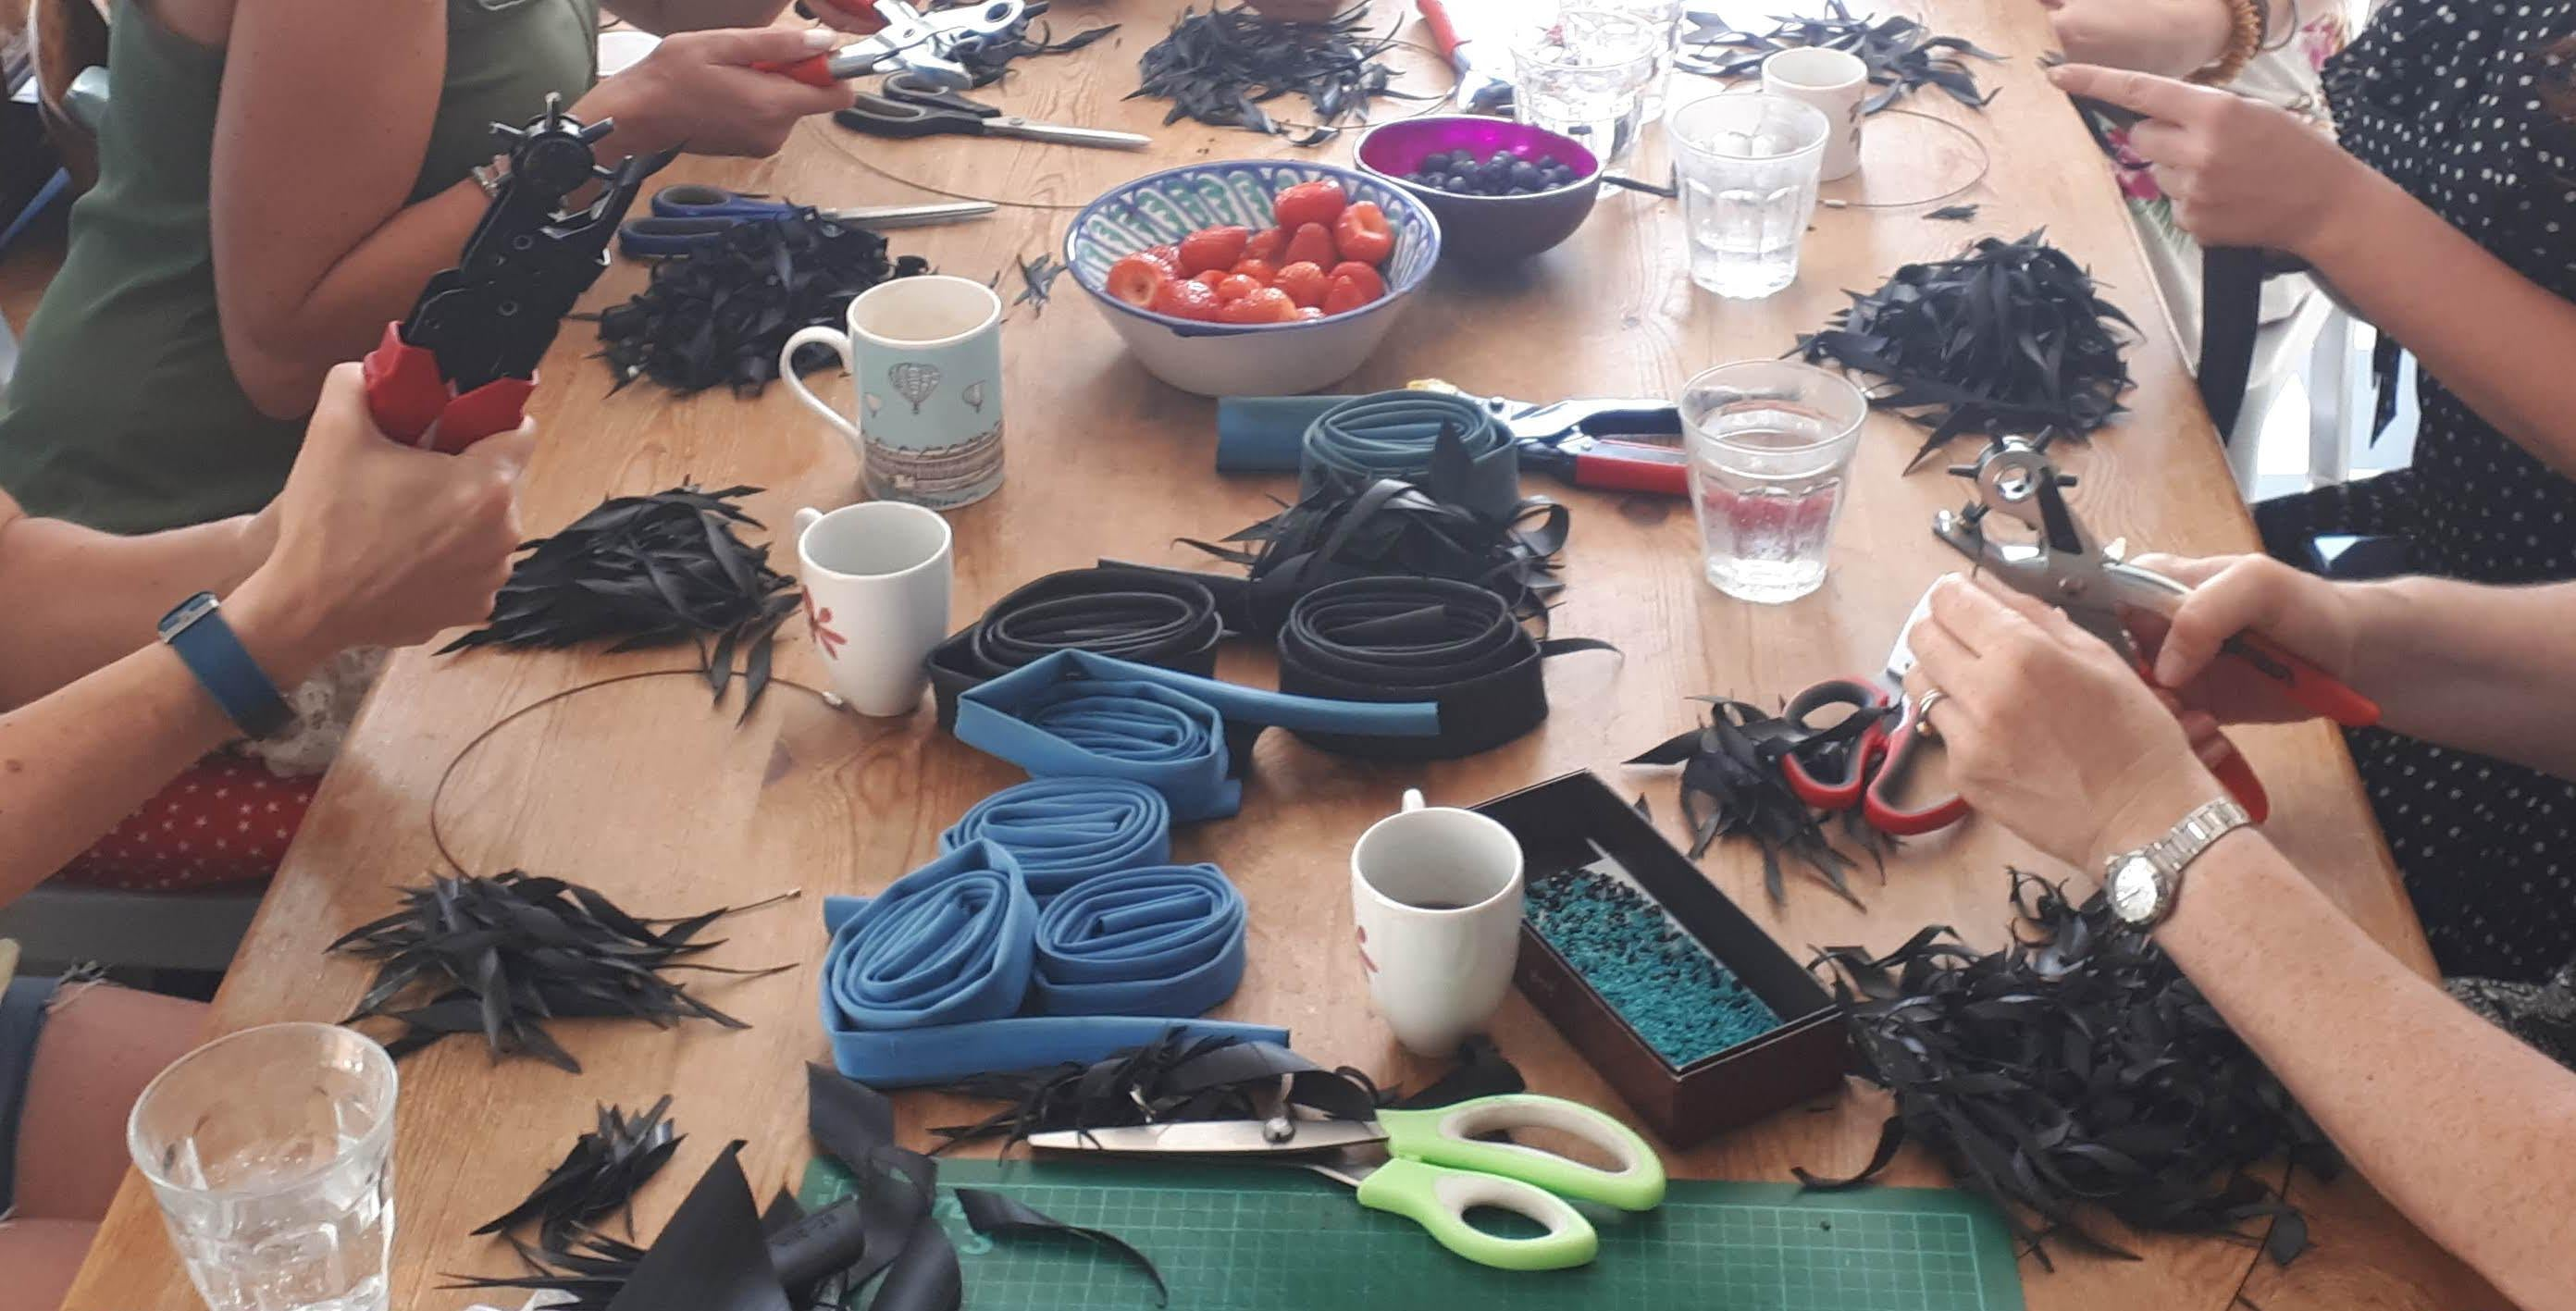 upcycled jewellery making workshop by Laura Zabo